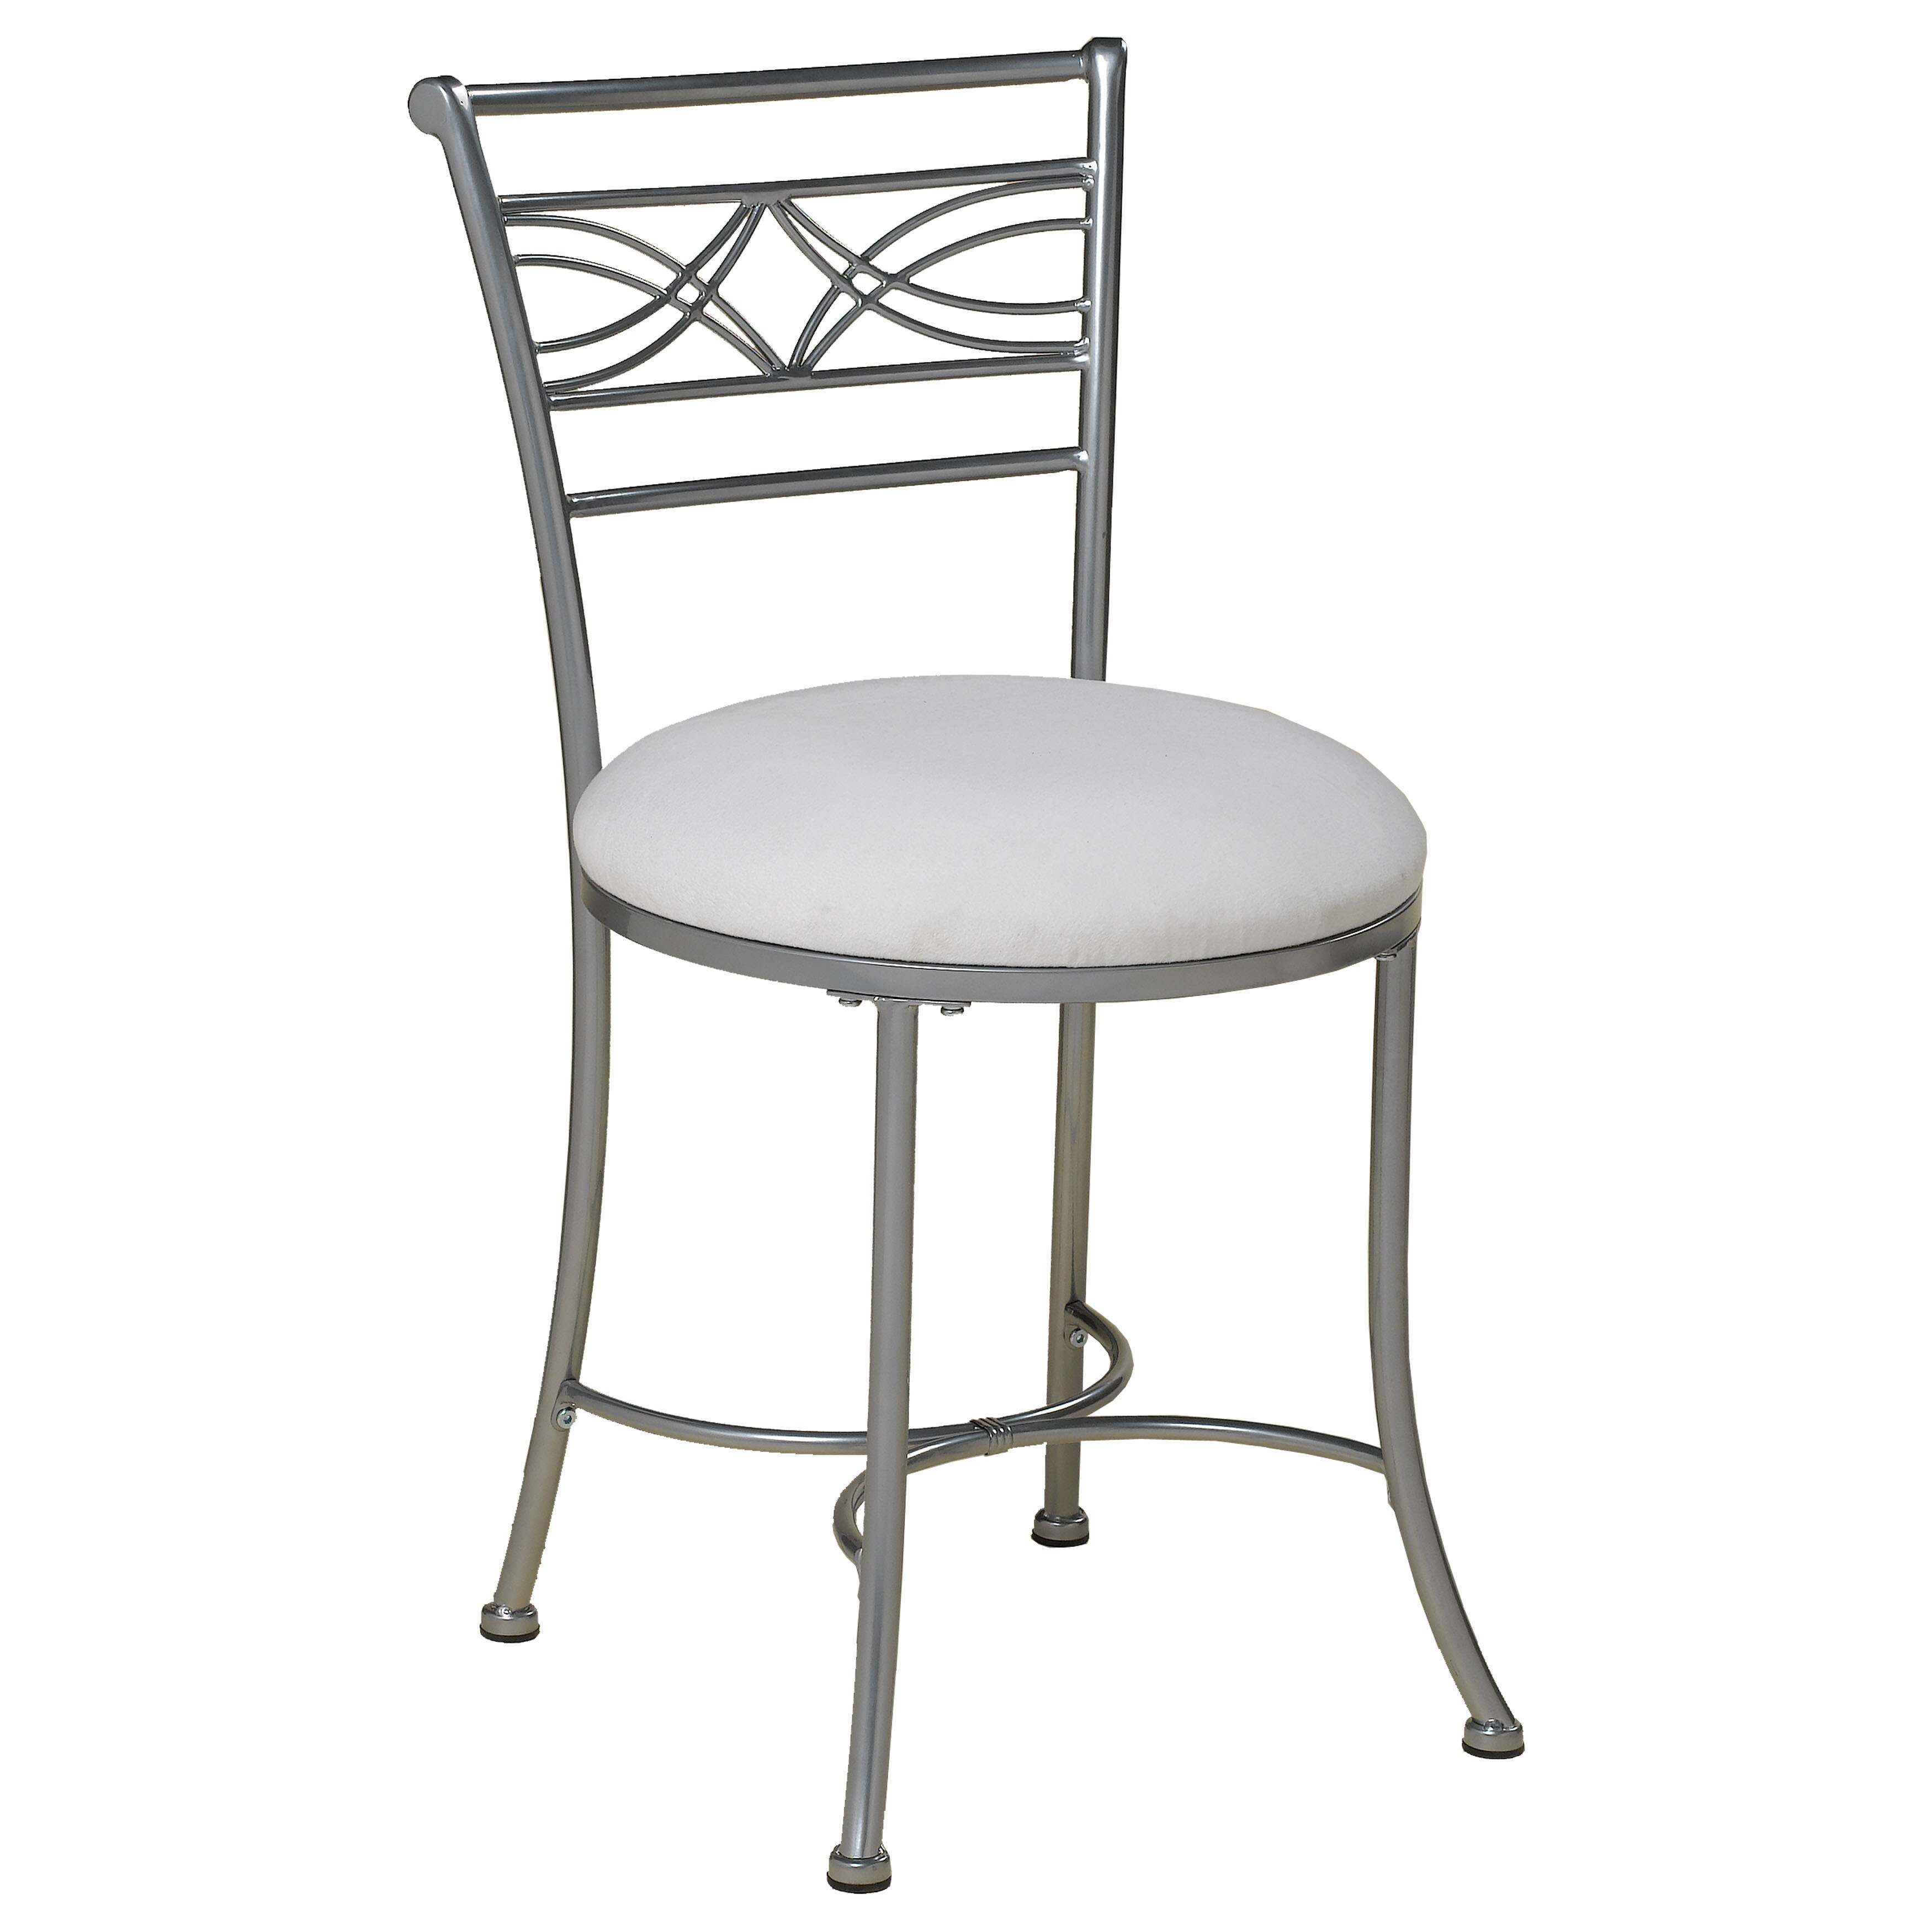 Vanity Stool Chrome Hillsdale Furniture Dutton Vanity Stool In Chrome Powder Coat Finish